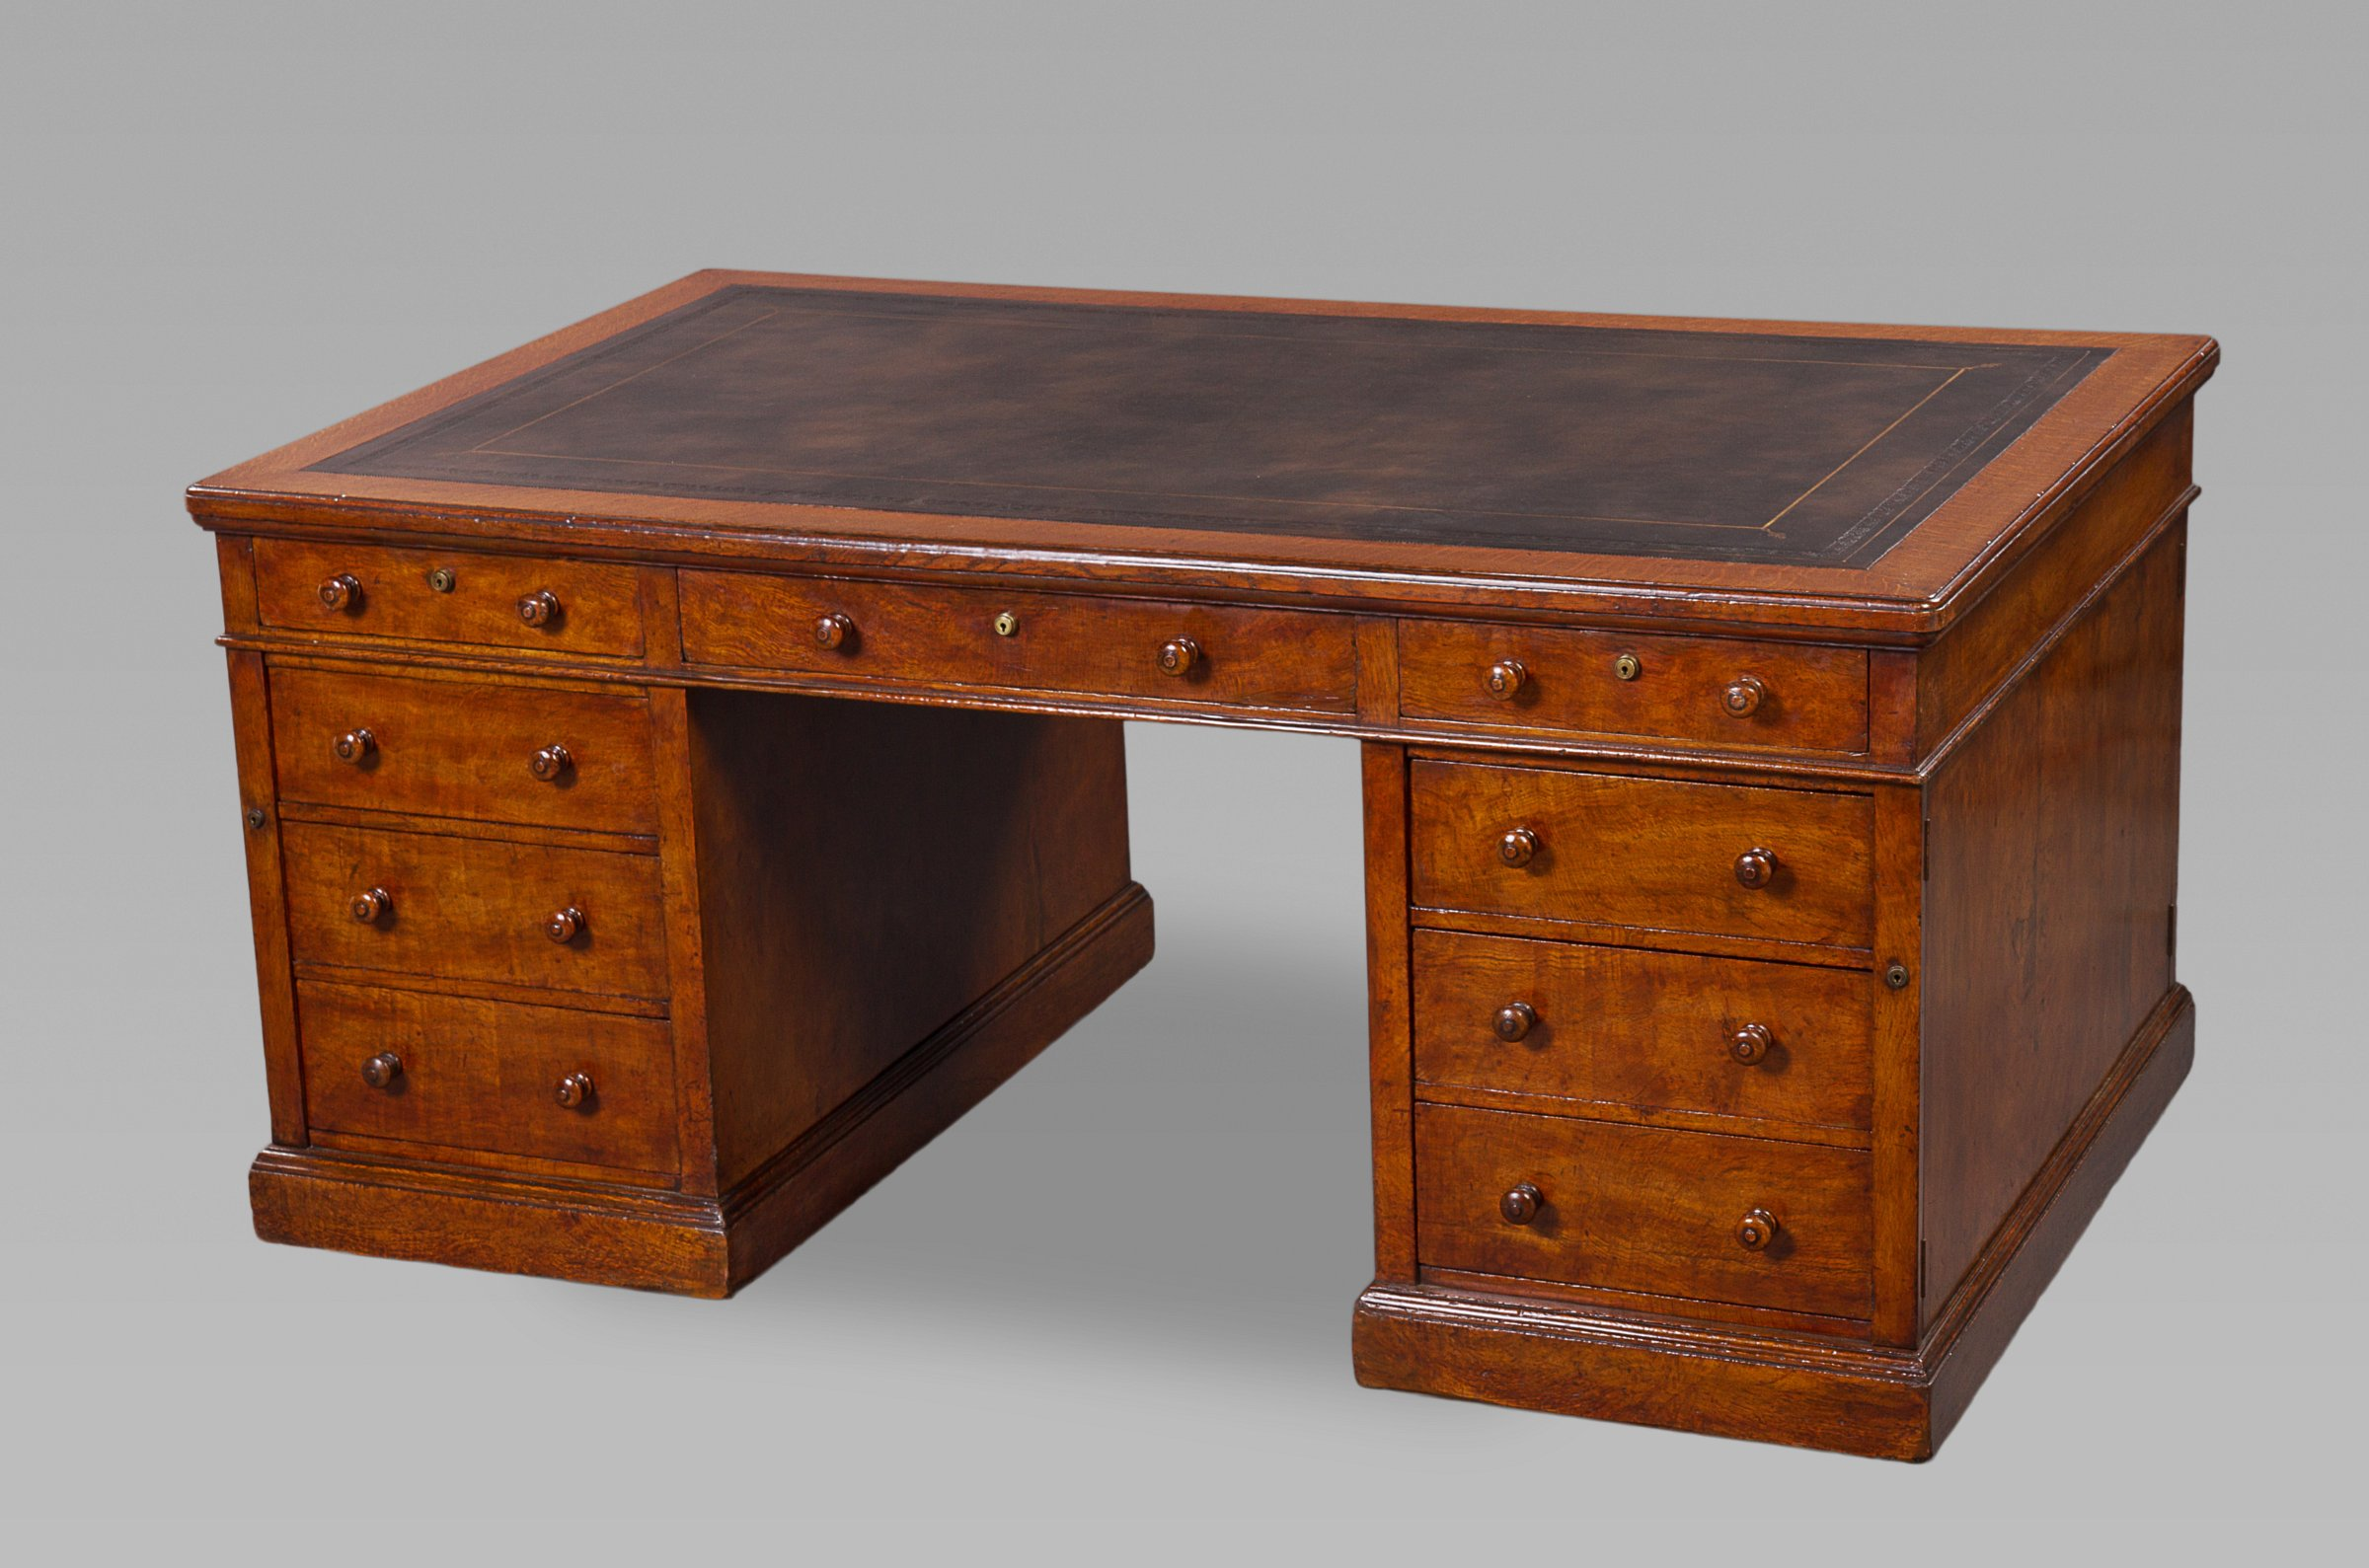 for desk period mahogany id georgian of at furniture the case desks english sale org partners f storage pieces z